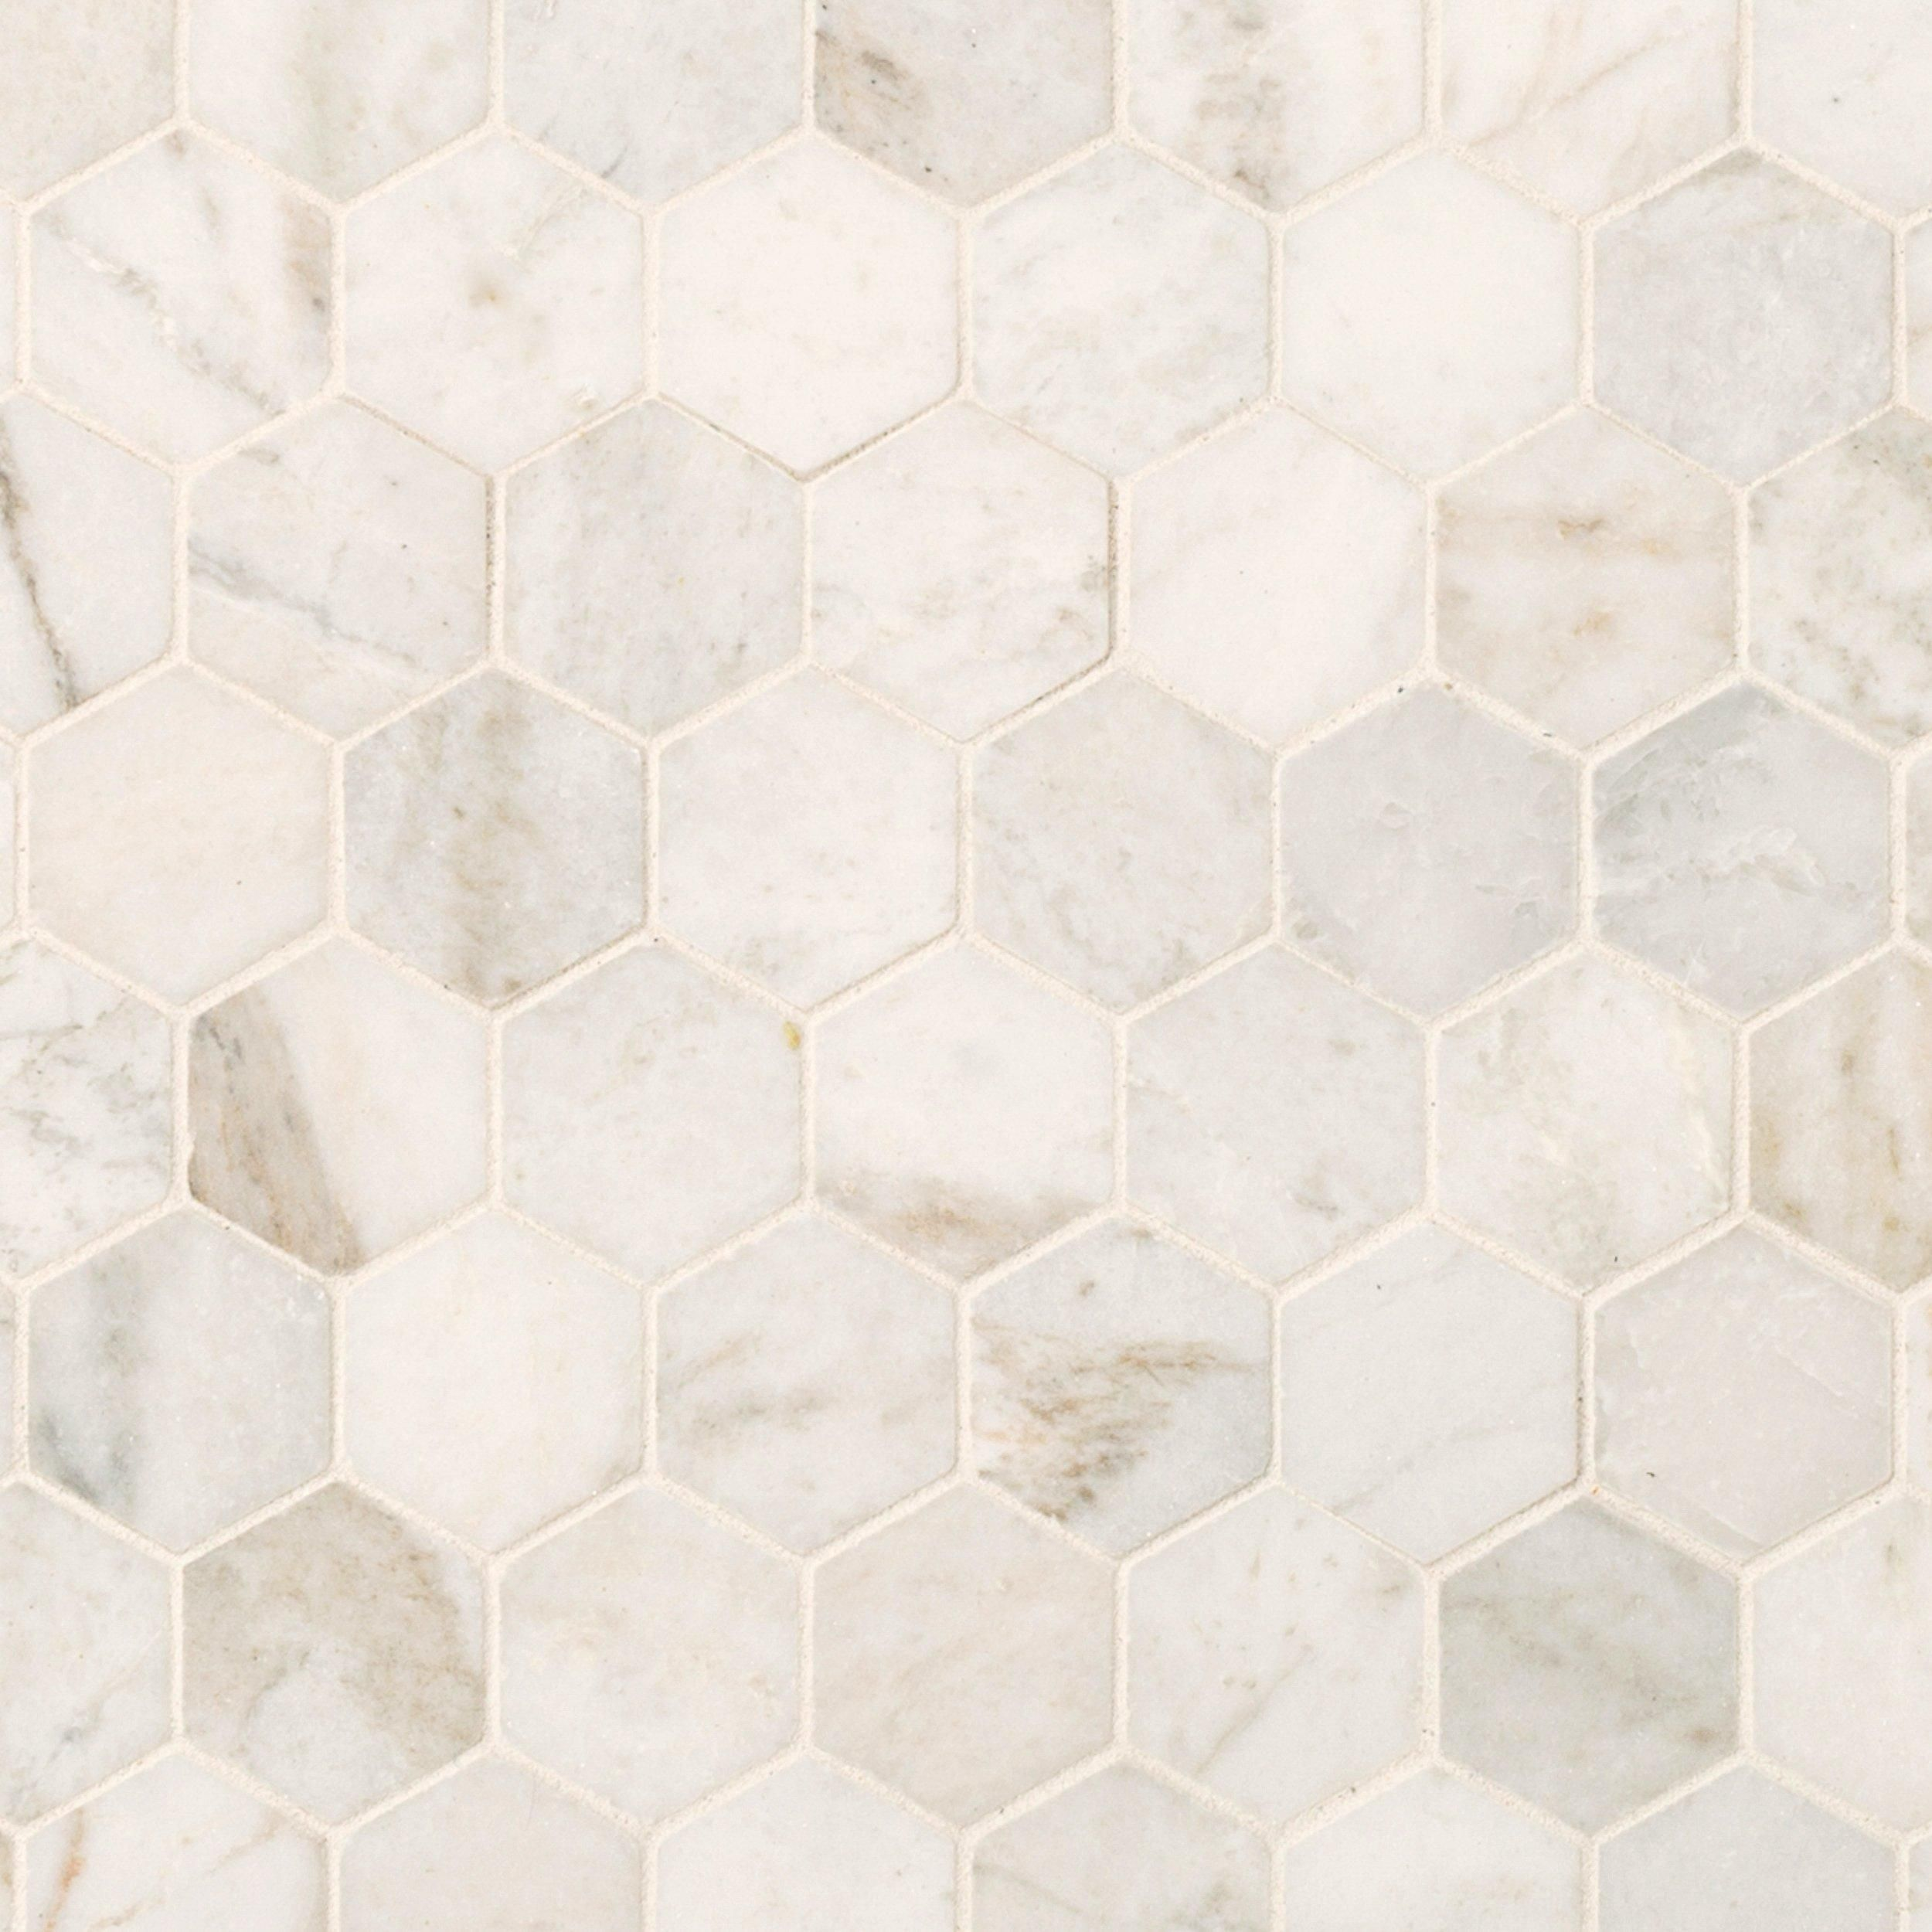 Bianco Orion Hexagon Polished Marble Mosaic In 2020 Marble Mosaic Stone Tile Flooring Polished Marble Tiles